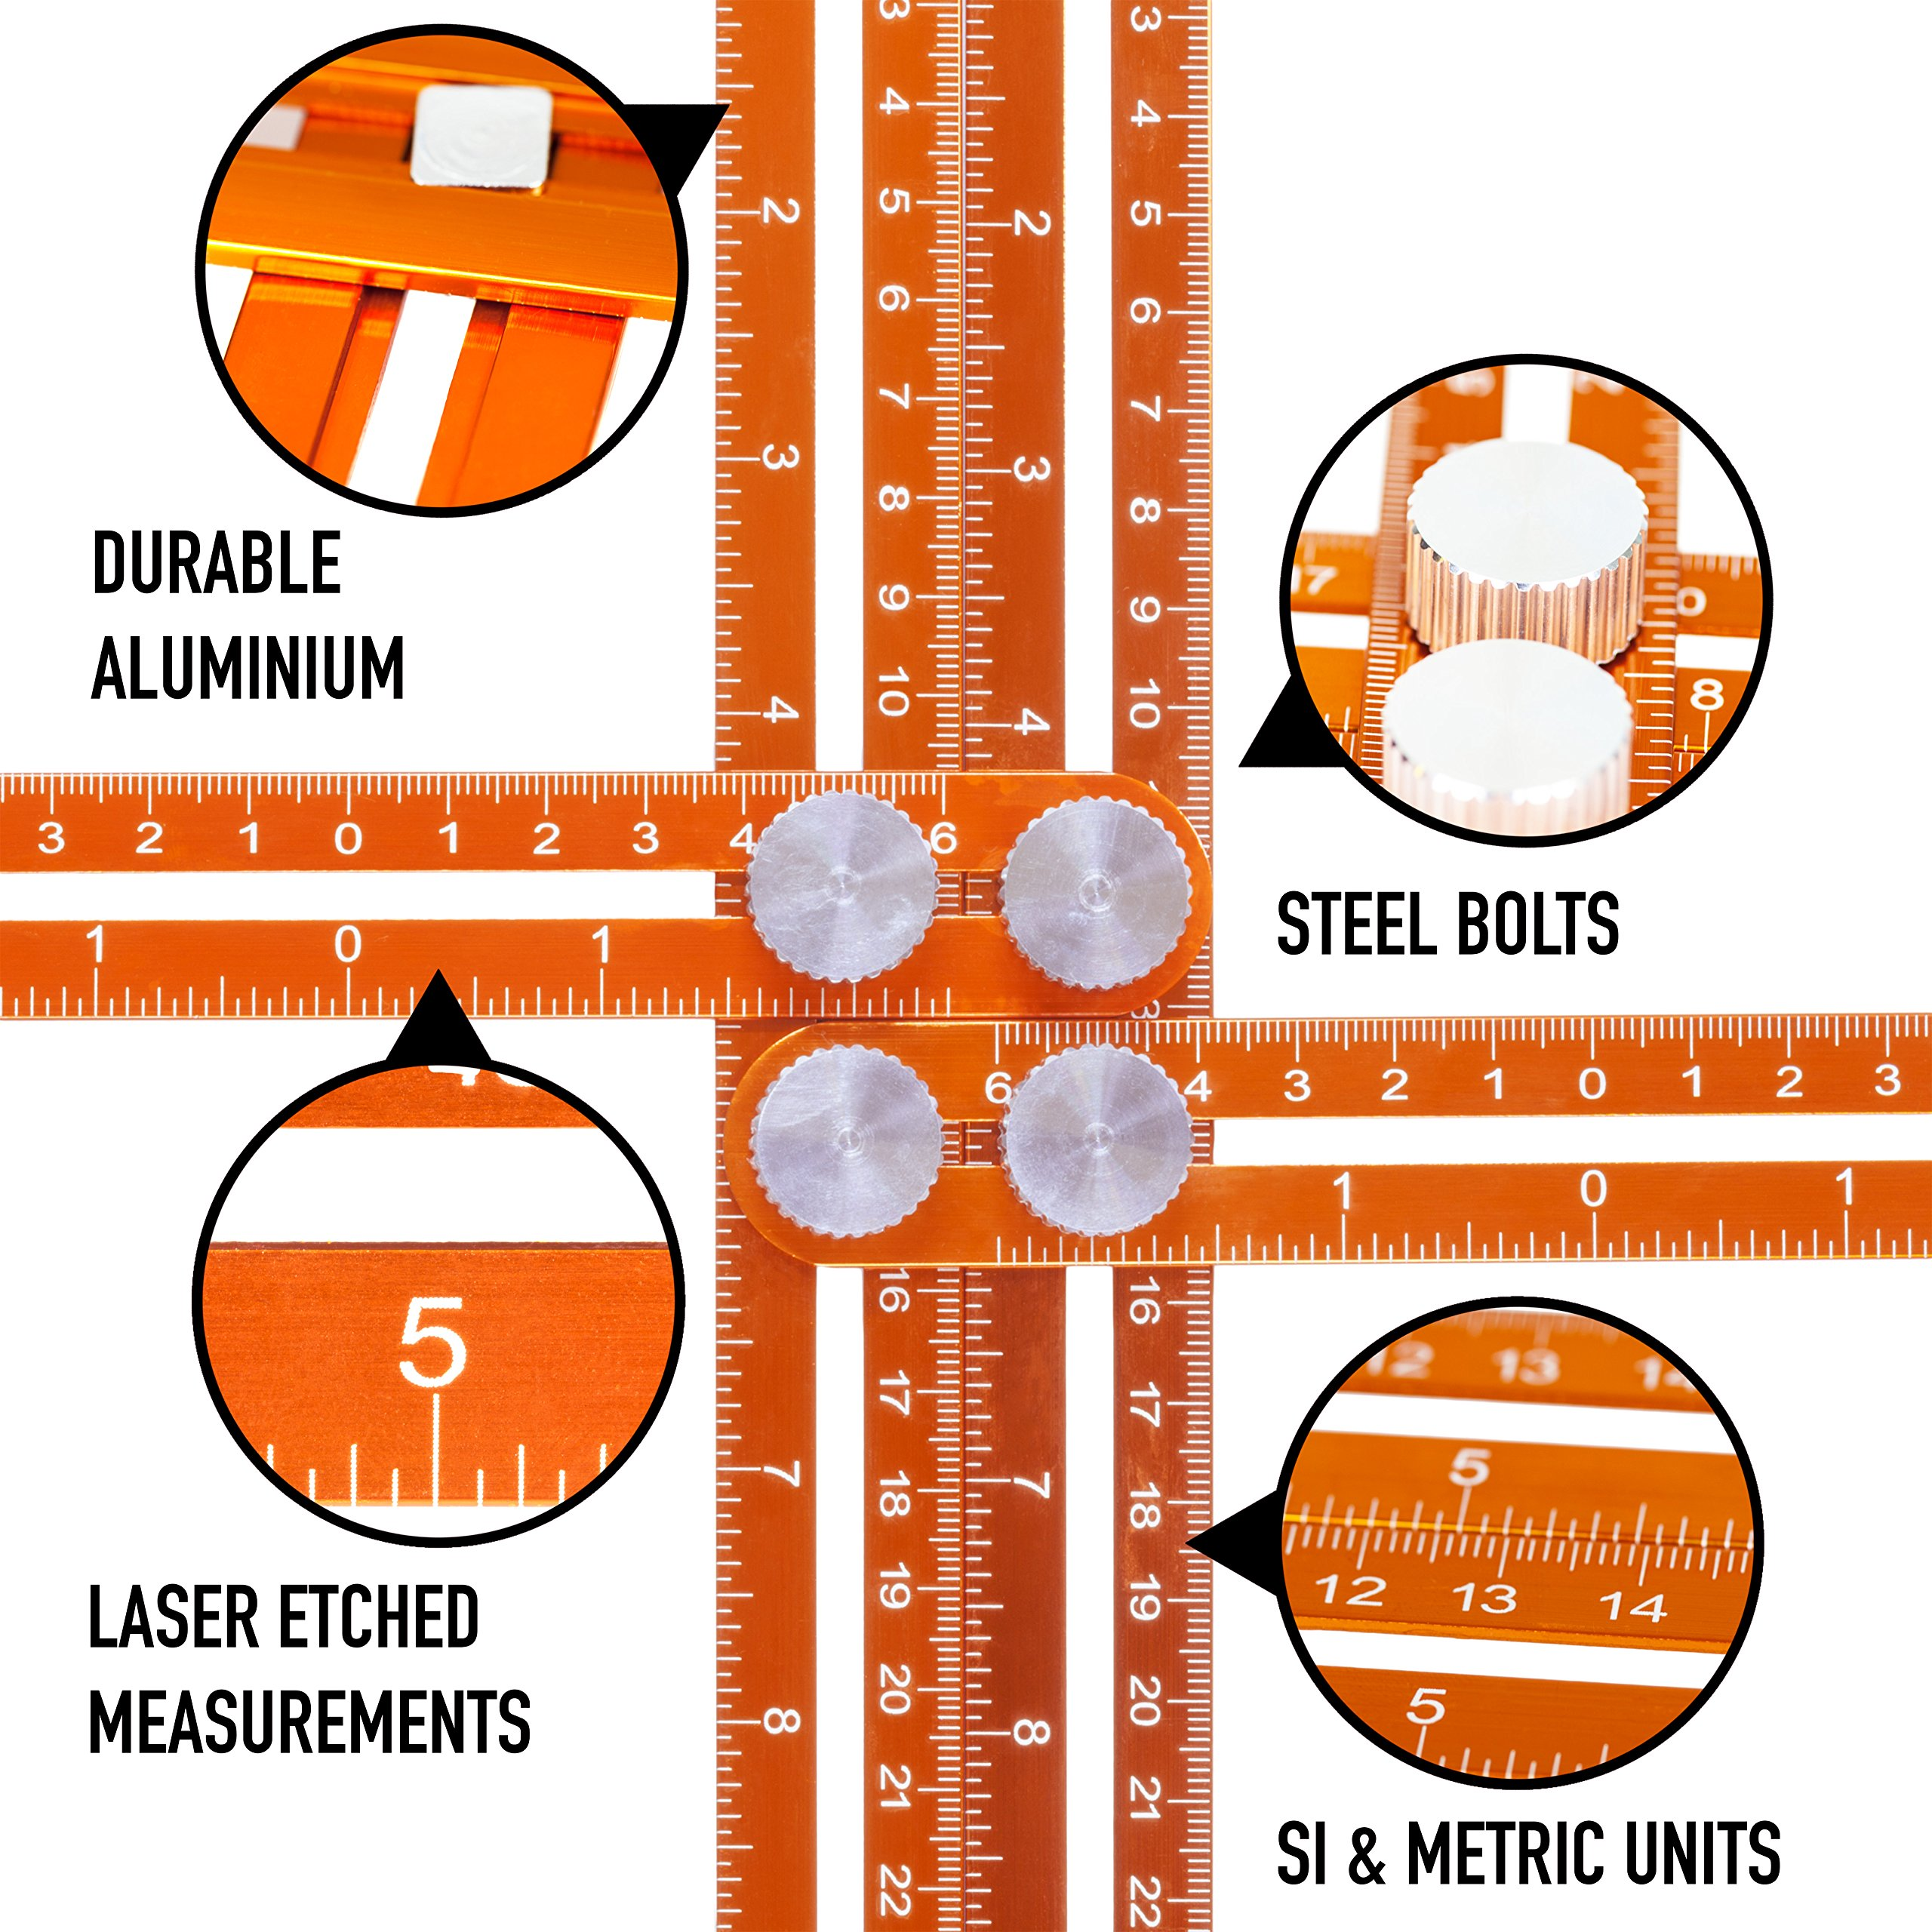 Angle Template Tool, Premium Aluminium Nook Scale Ruler, Metal Multi Functional Measuring. Instruction Leaflet. Low Profile for Accurate Measurements. Pro quality DIY, Joiners, Tilers. Great present by Twenty Percent (Image #3)